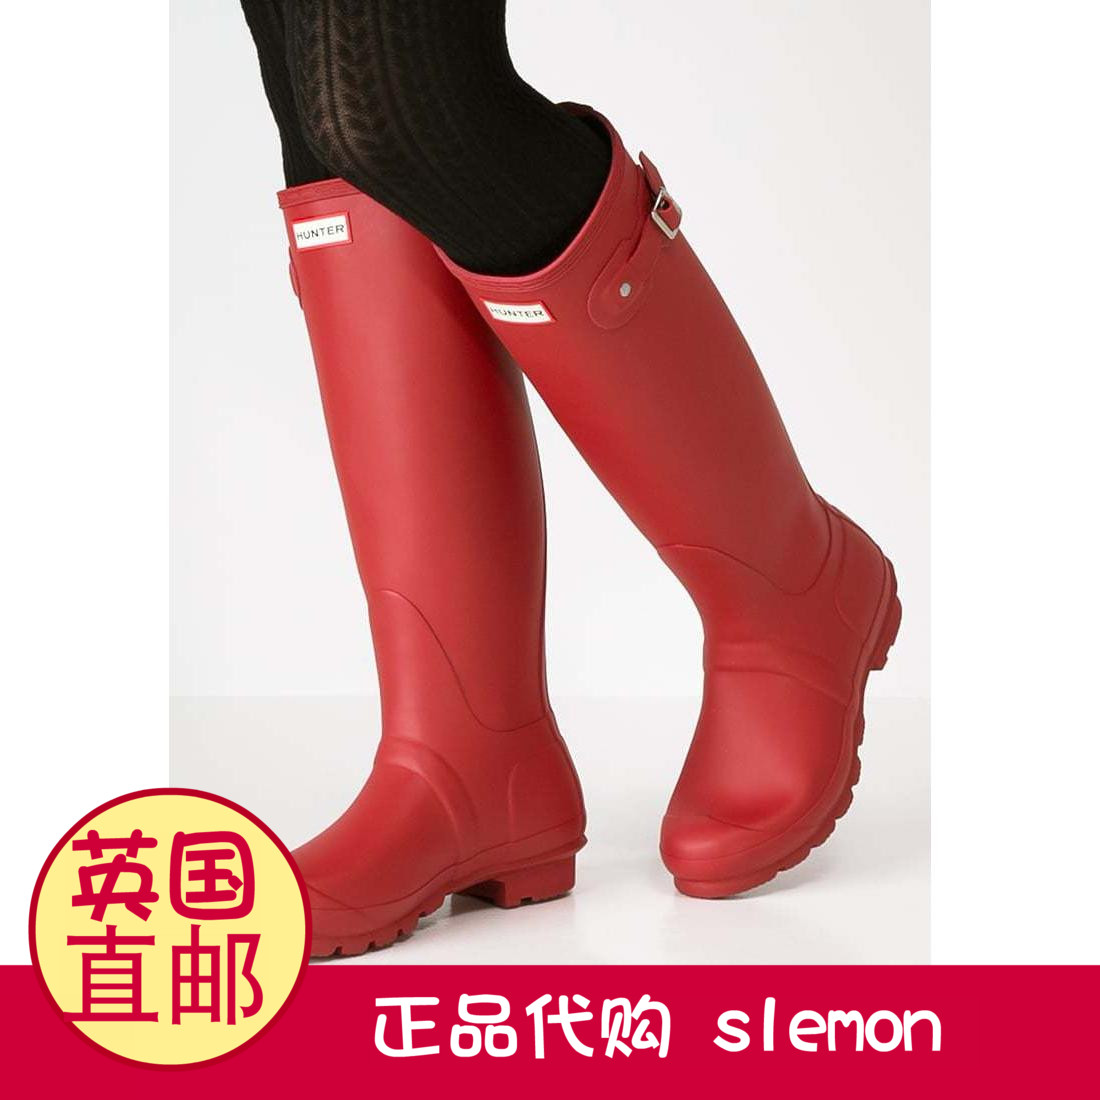 British direct mail genuine purchase HUNTER boots rain boots long tube rain  boots rubber rain boots 123a85ede39d3